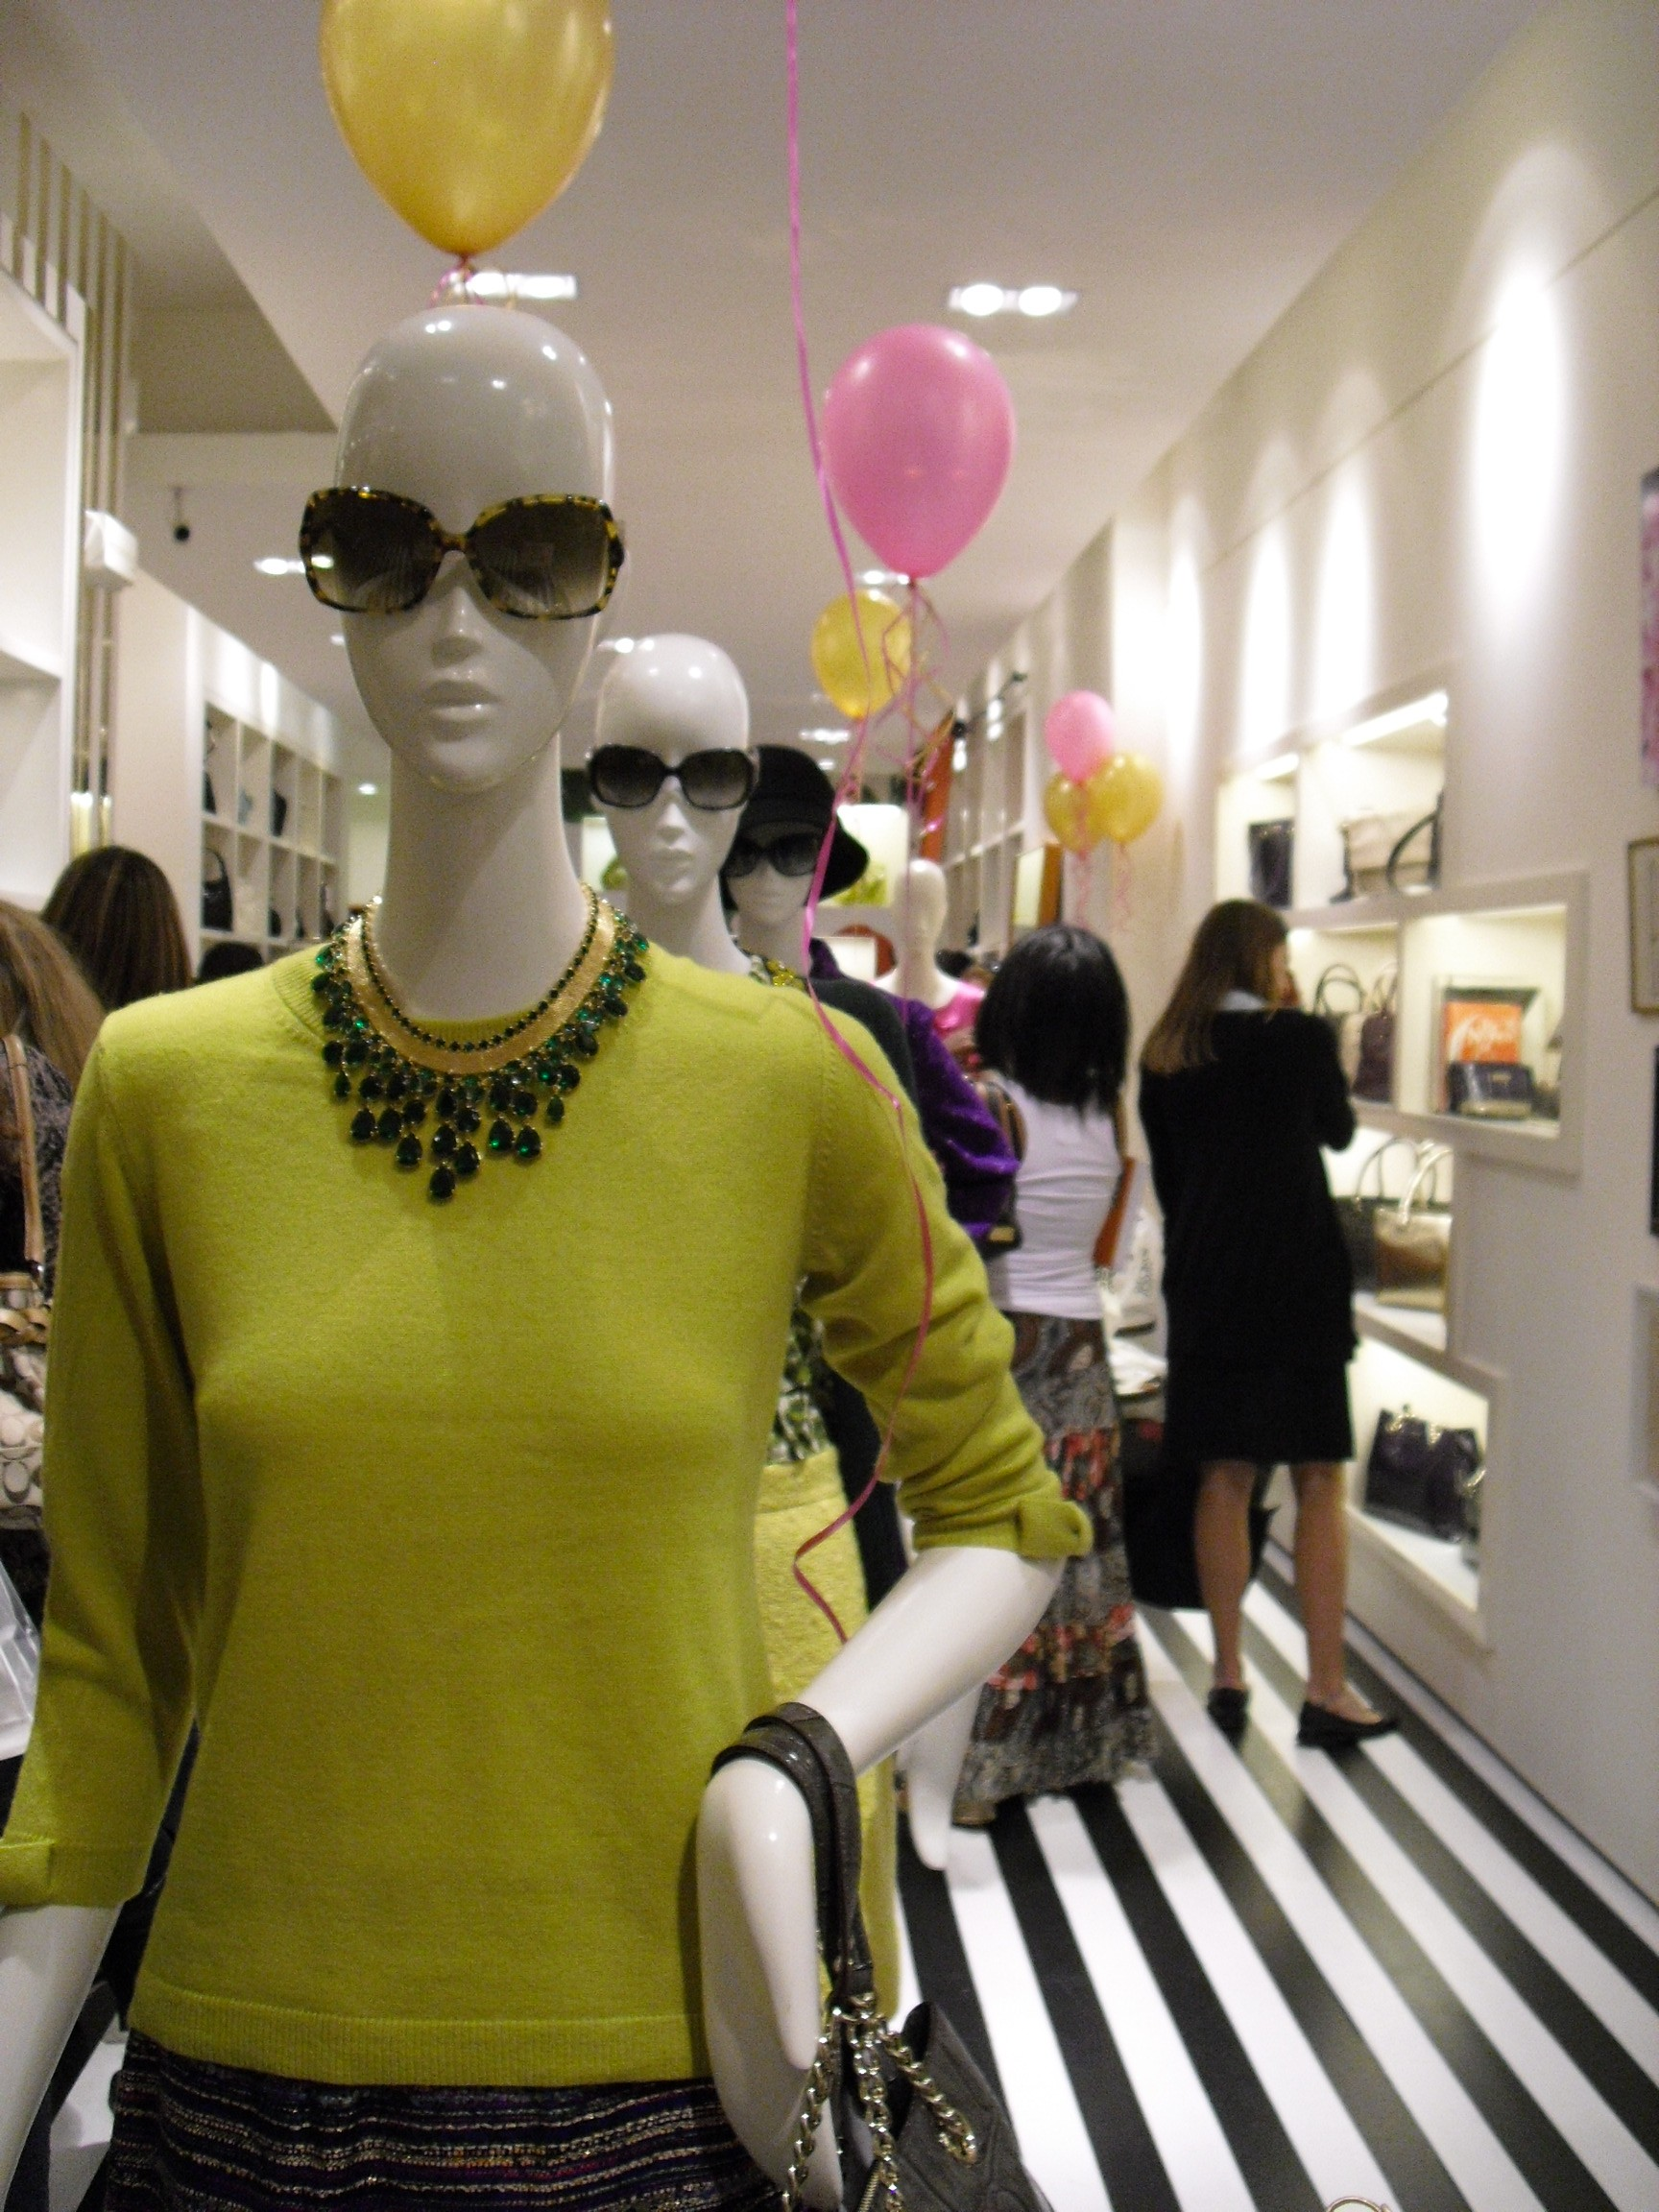 Sweaters and jewelry on mannequins - Kate Spade, Georgetown